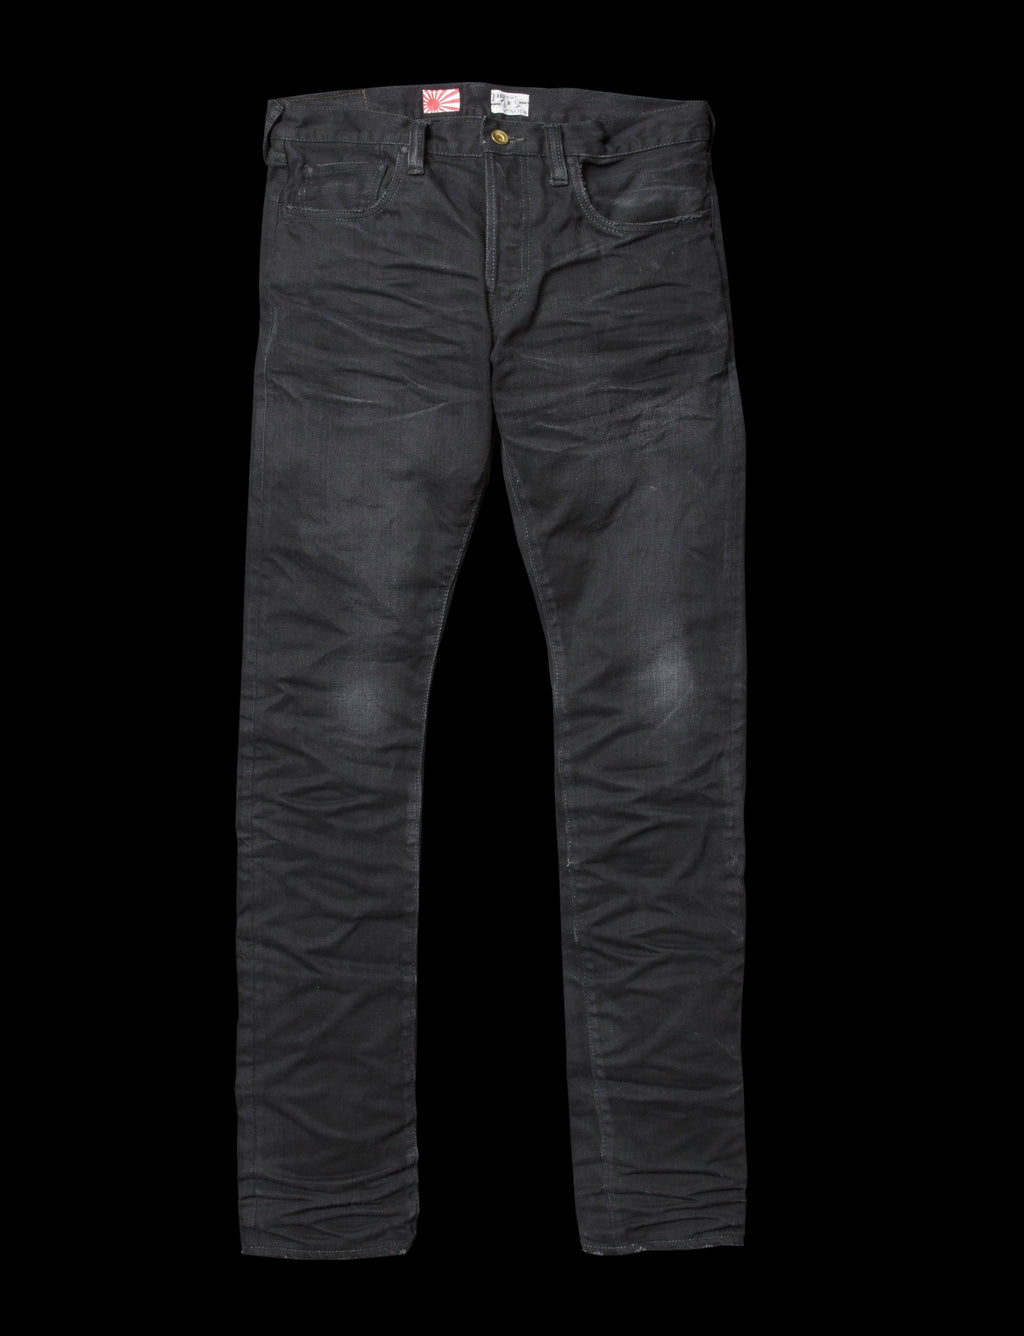 Prps - Demon - Selvedge Zany - Jeans - Prps